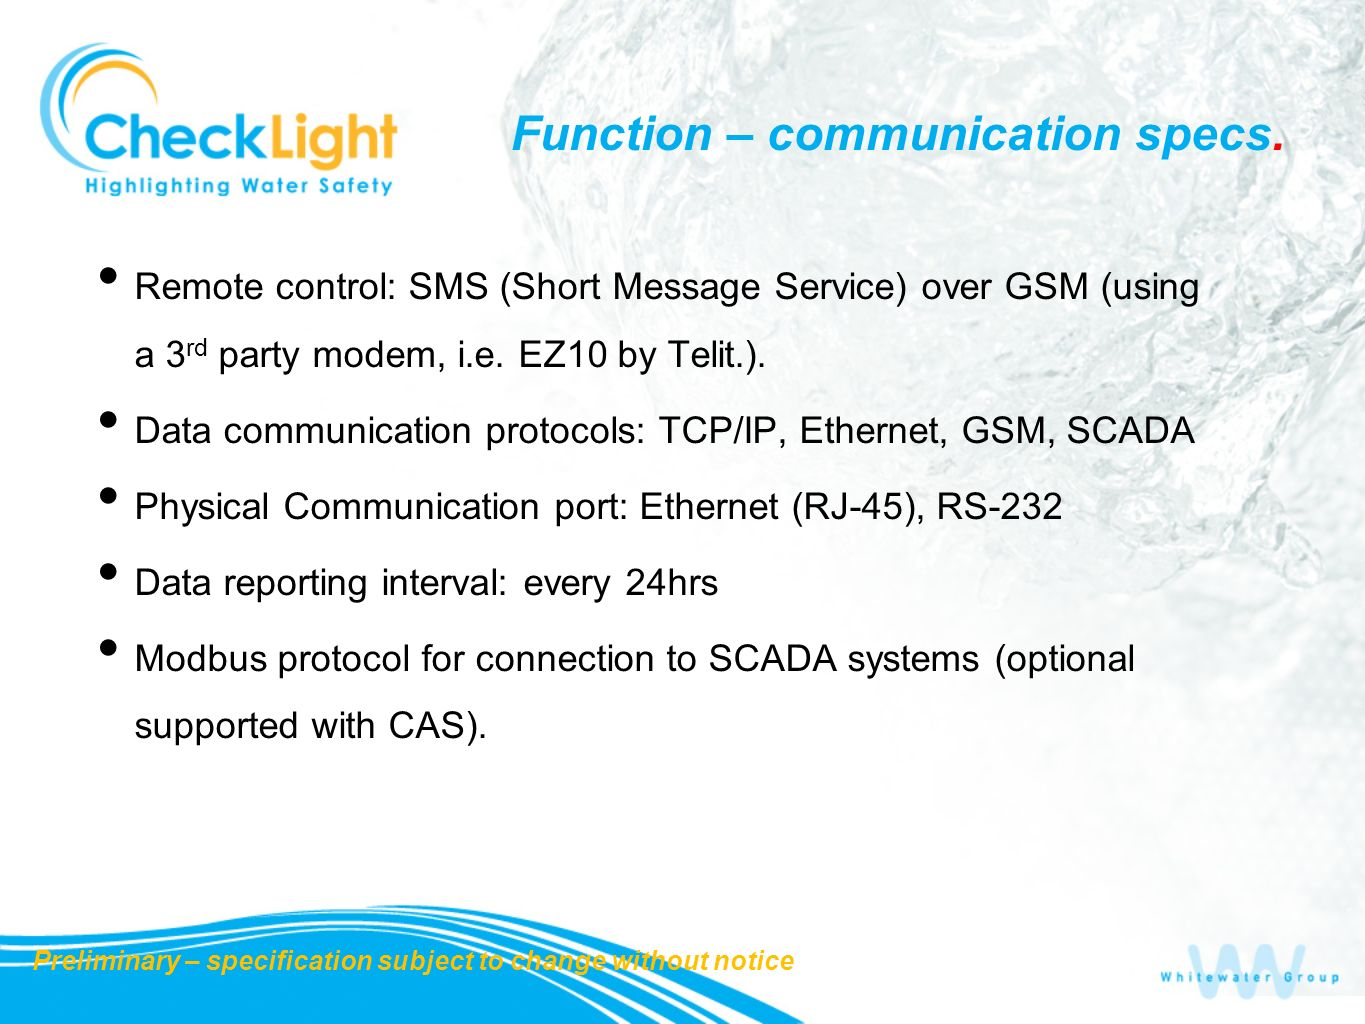 Function – communication specs. Remote control: SMS (Short Message Service) over GSM (using a 3 rd party modem, i.e. EZ10 by Telit.). Data communicati